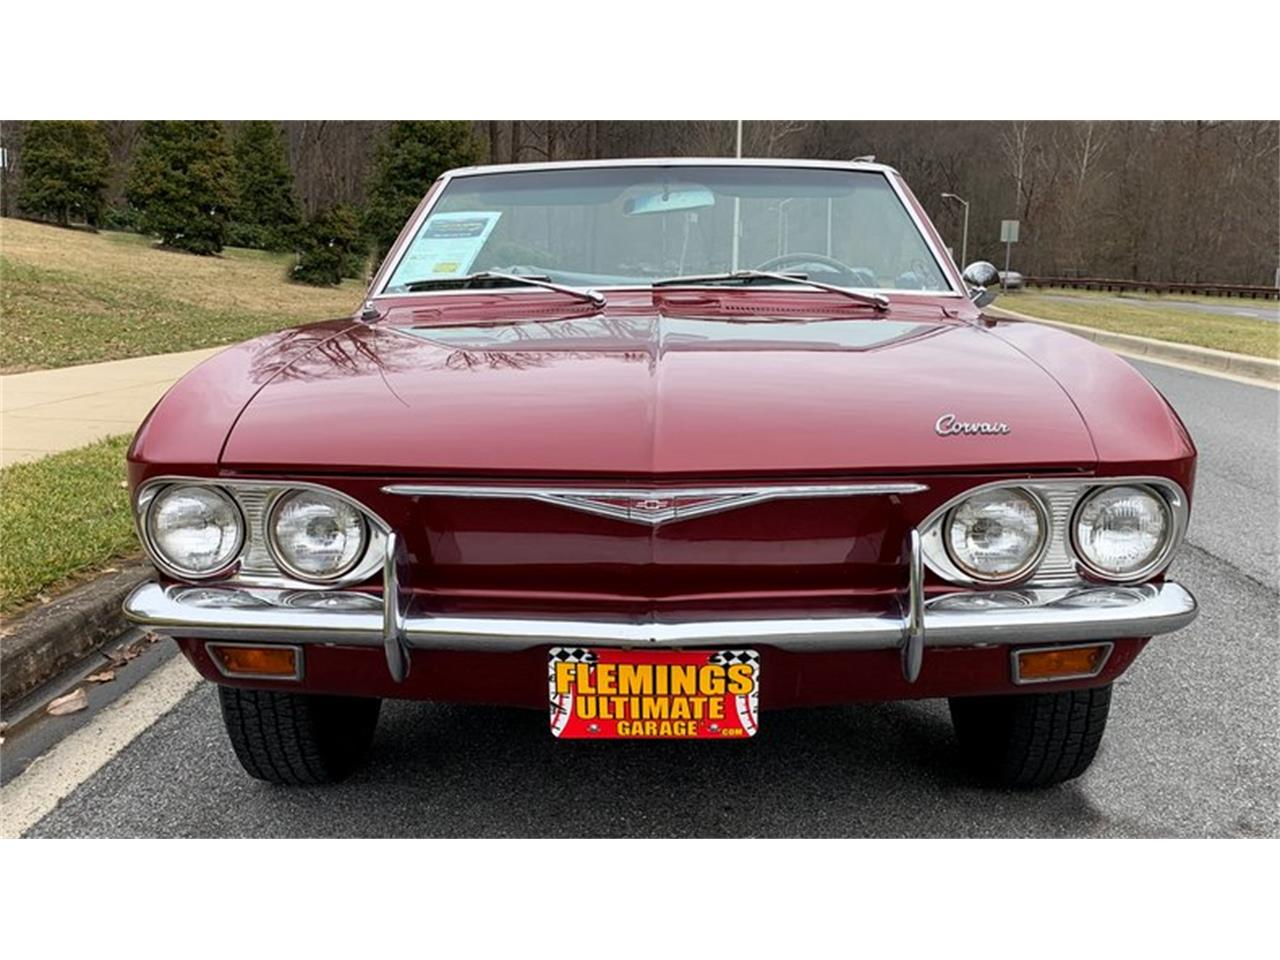 Large Picture of '65 Corvair - $19,990.00 - PF6P